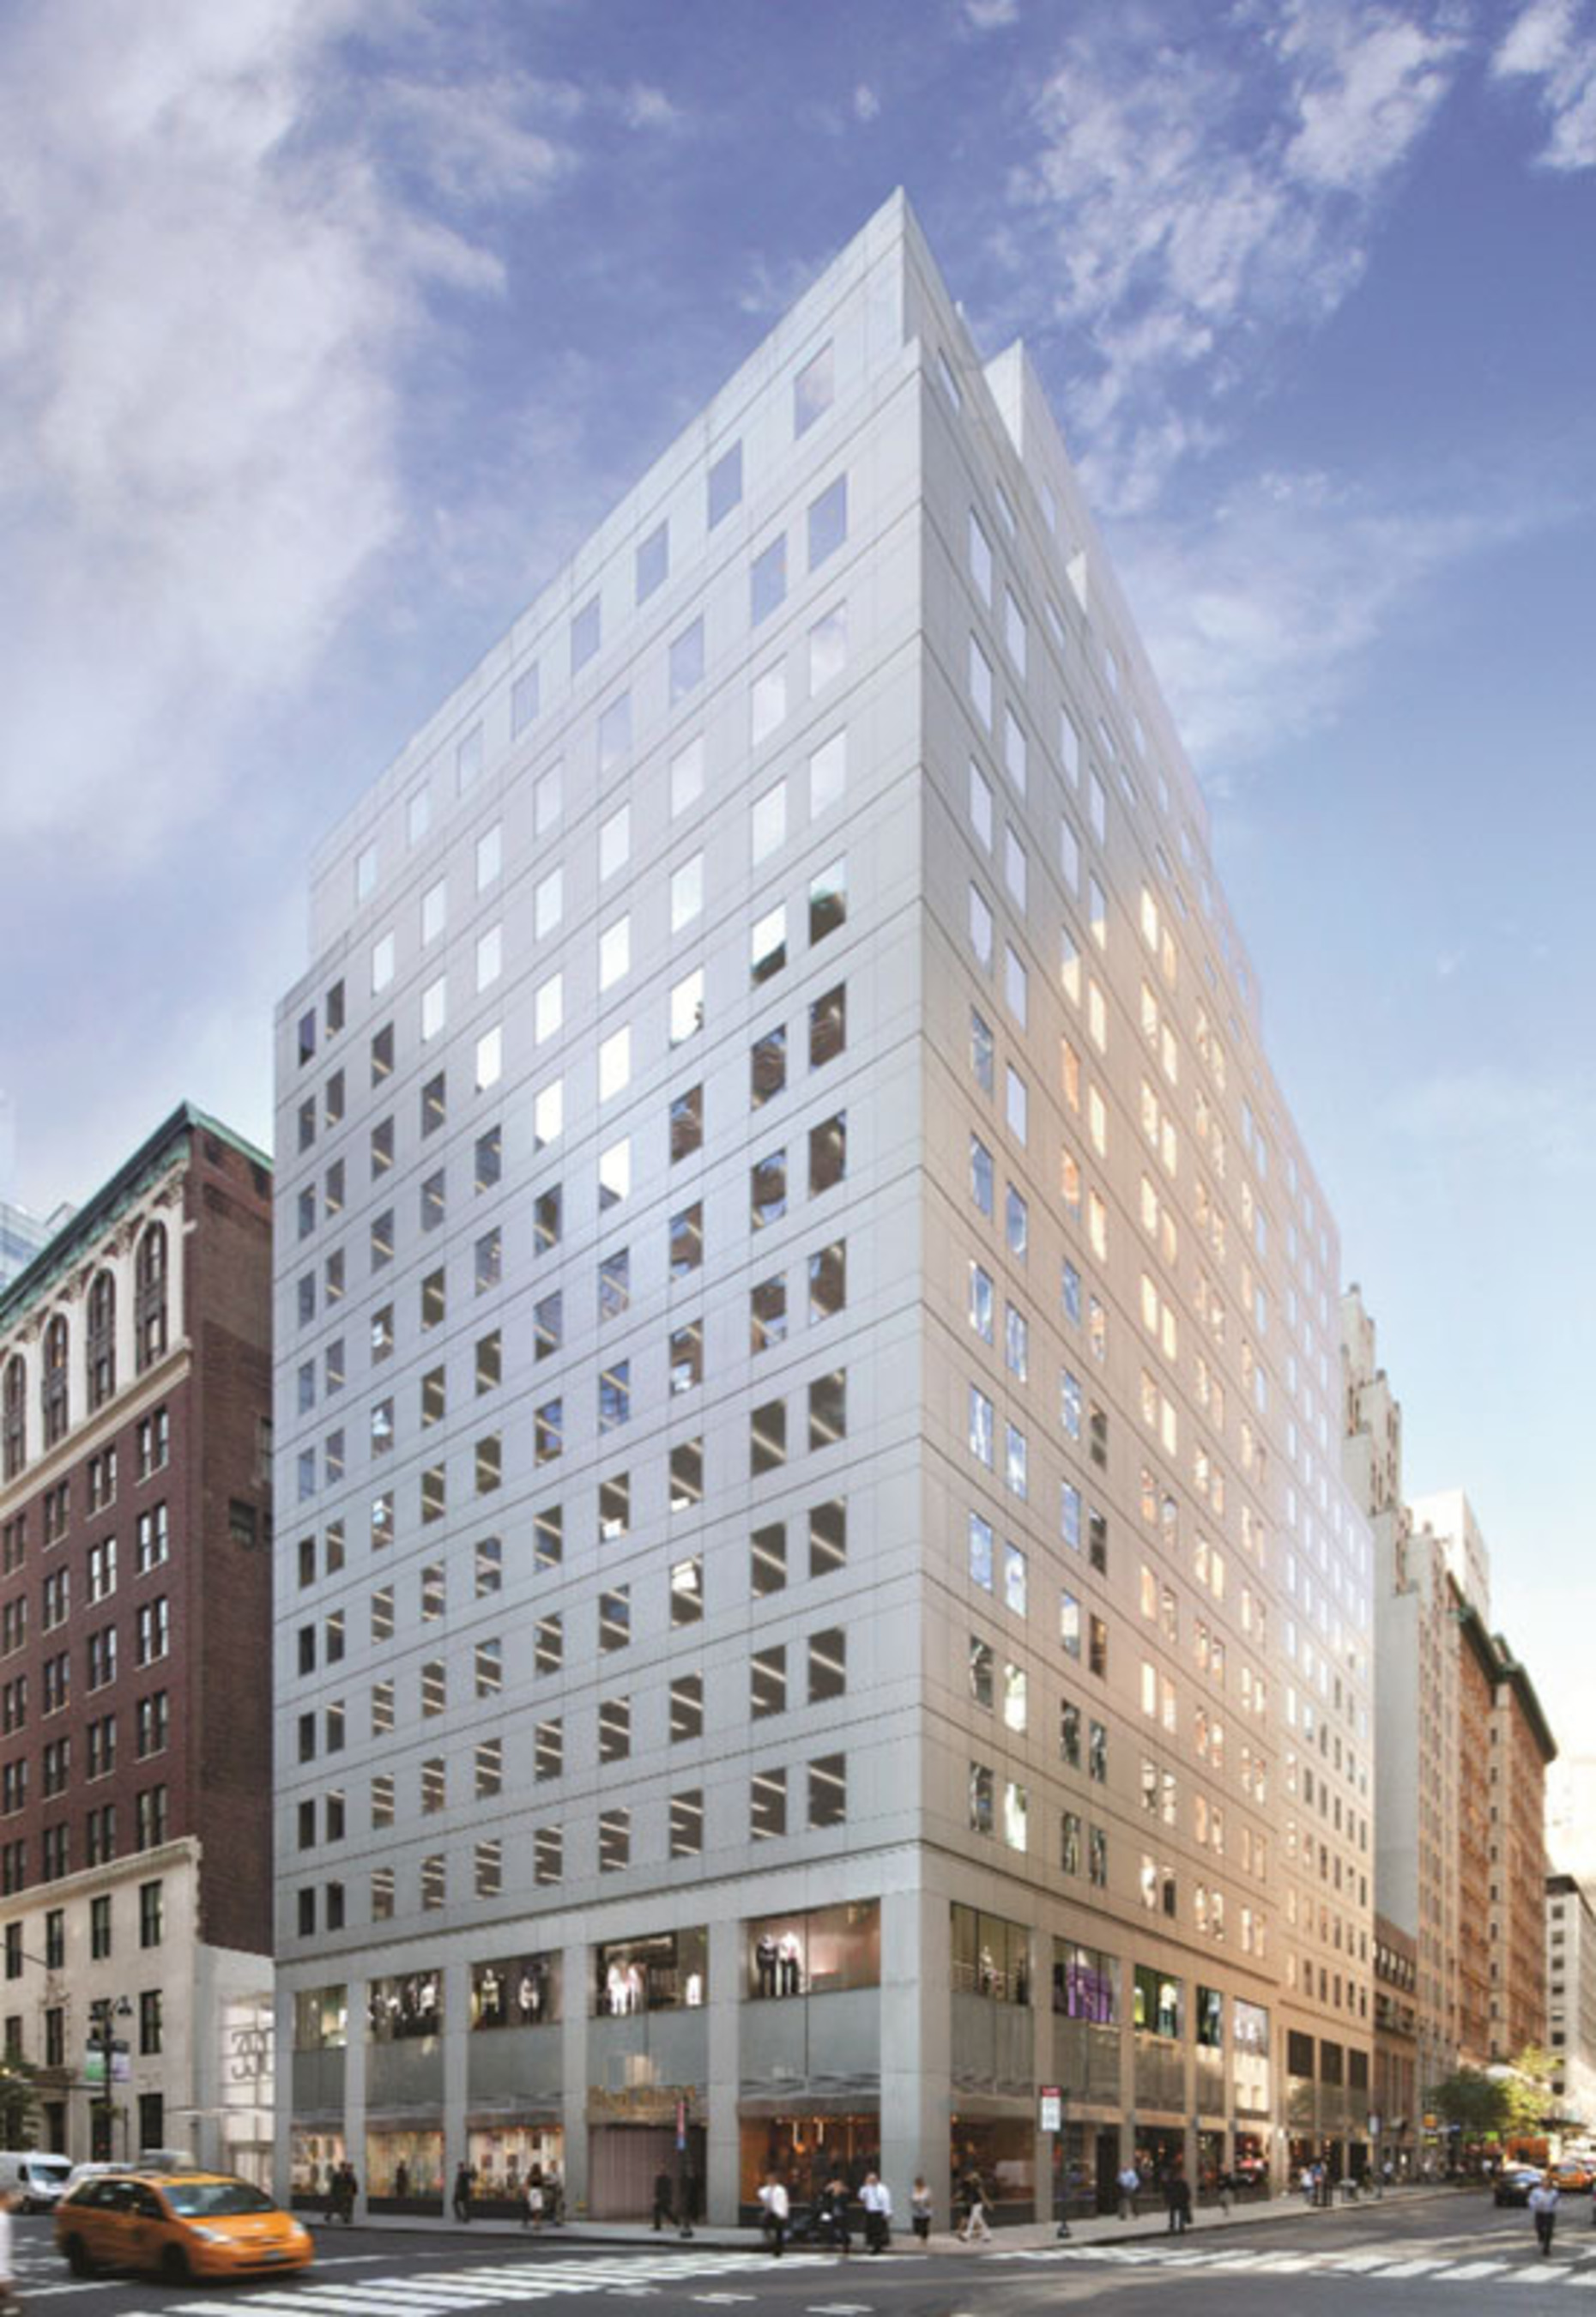 350 Madison Avenue property.  (PRNewsFoto/RFR Realty LLC)